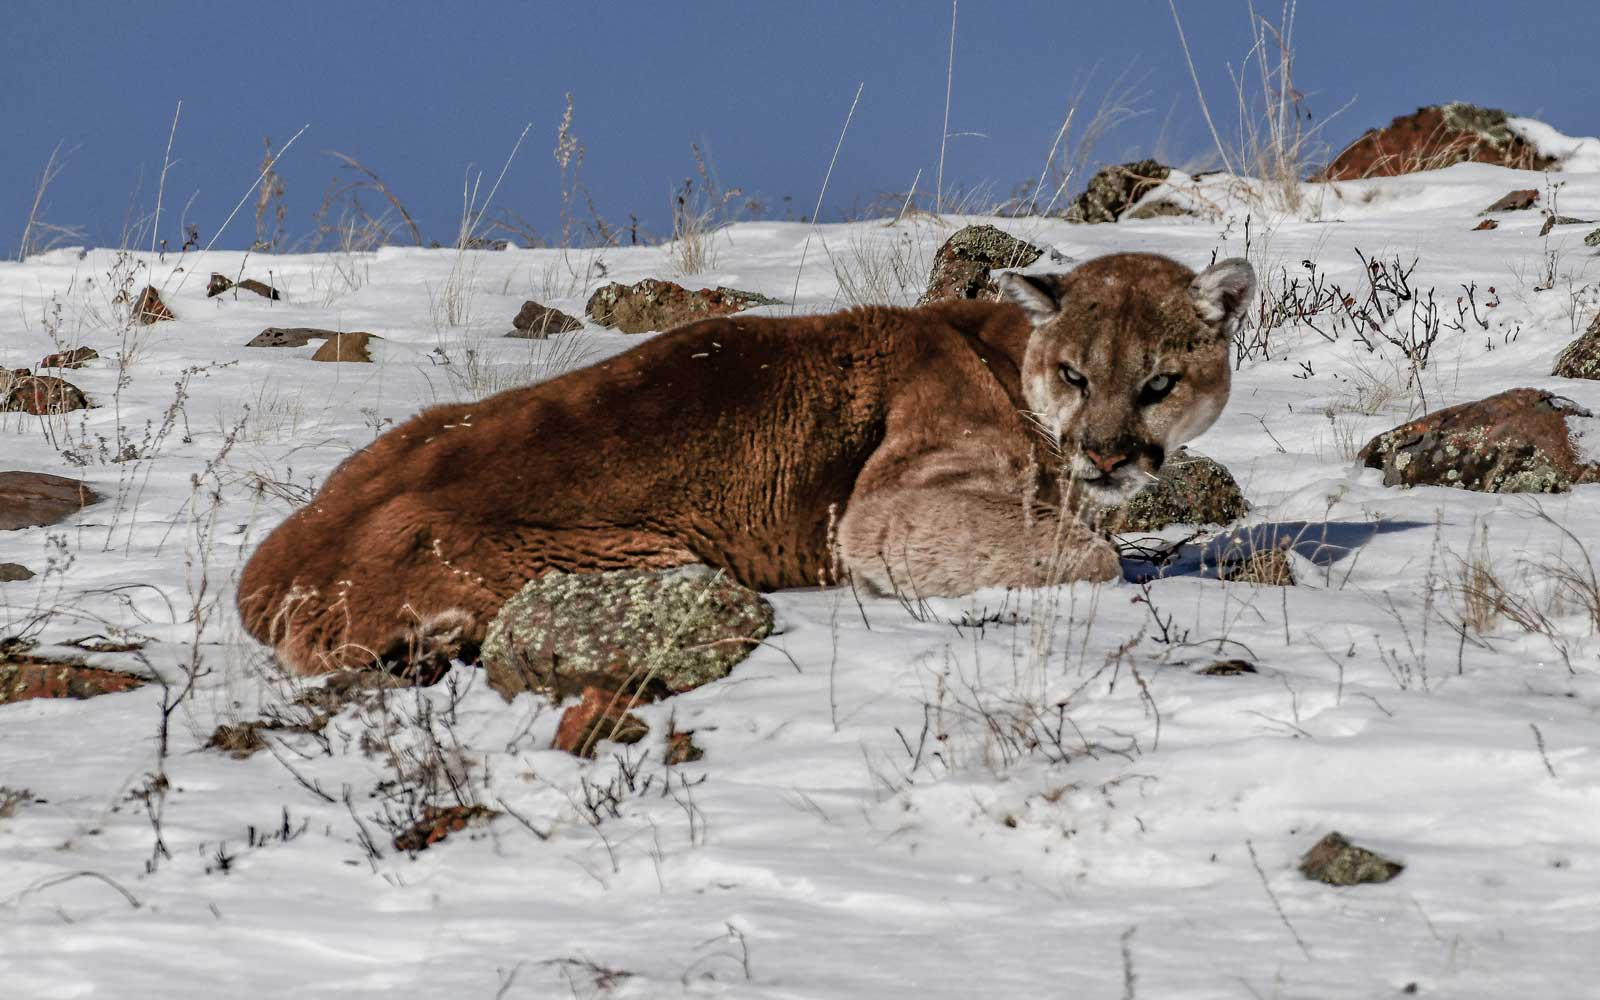 Mountain Lion at Yellowstone National Park